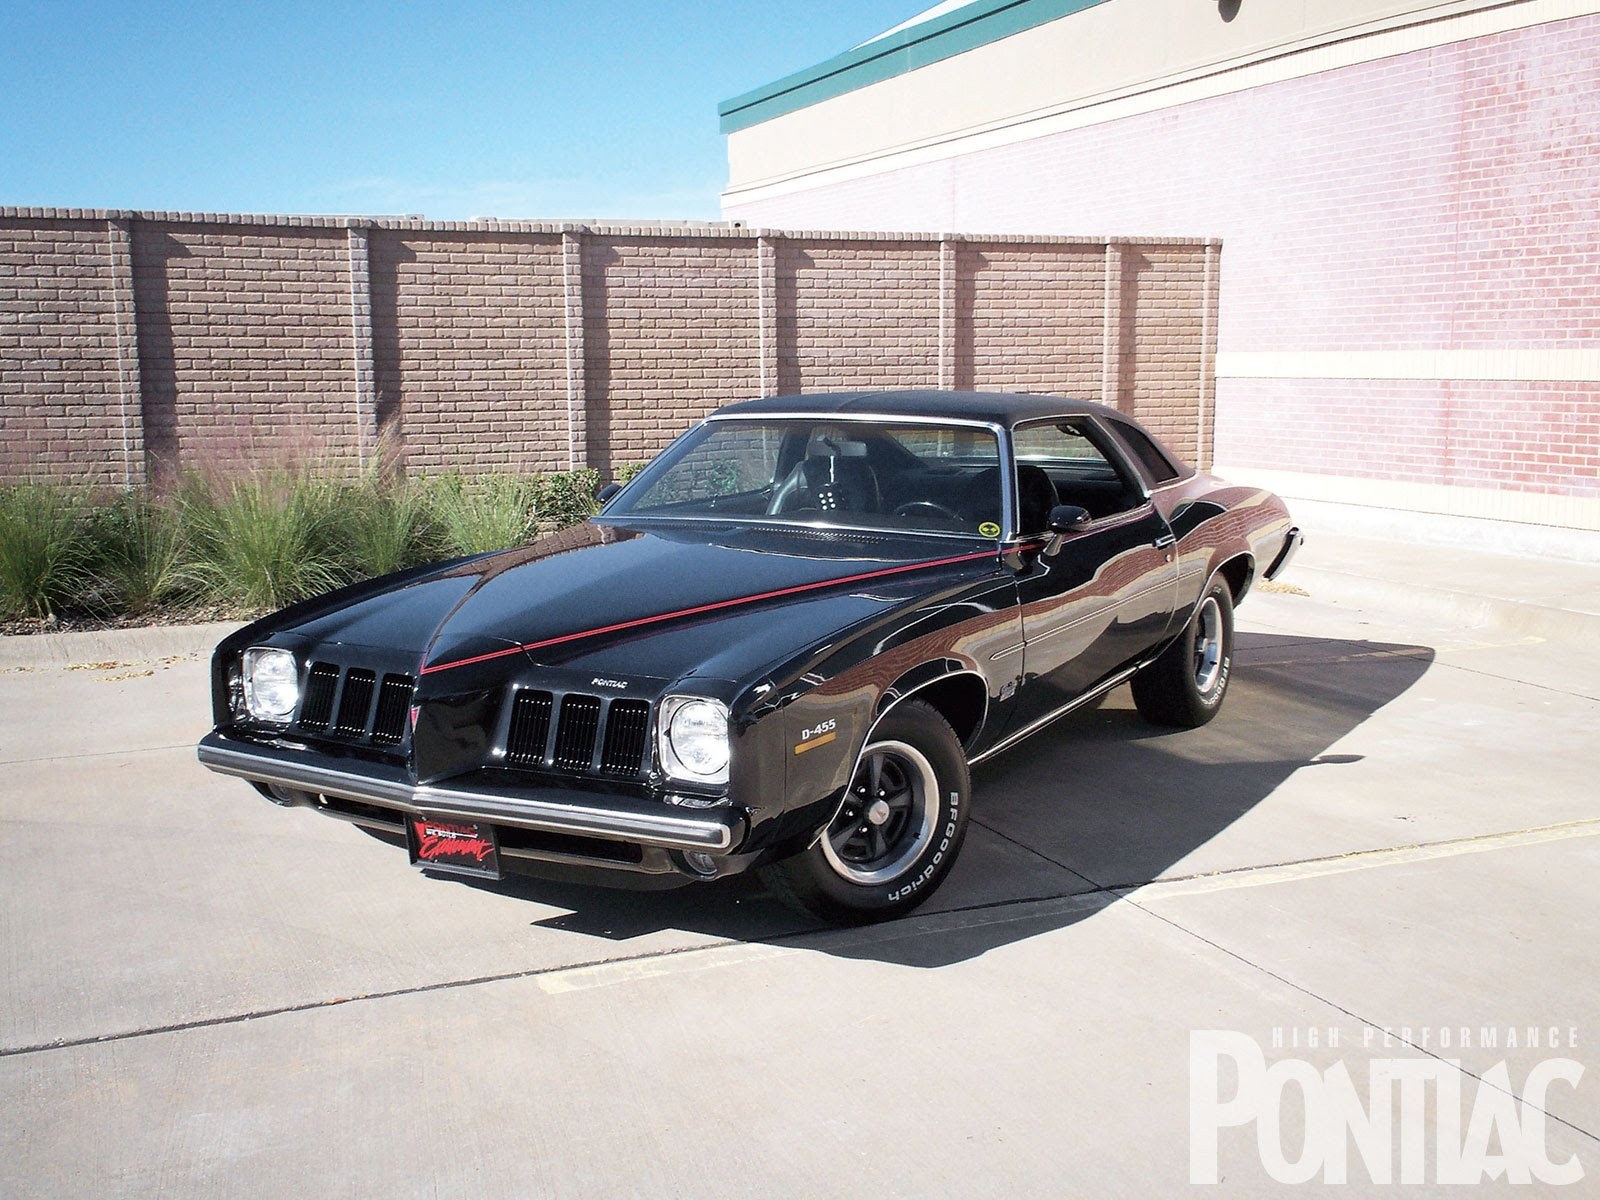 Pontiac Grand Am 1973 widescreen wallpapers